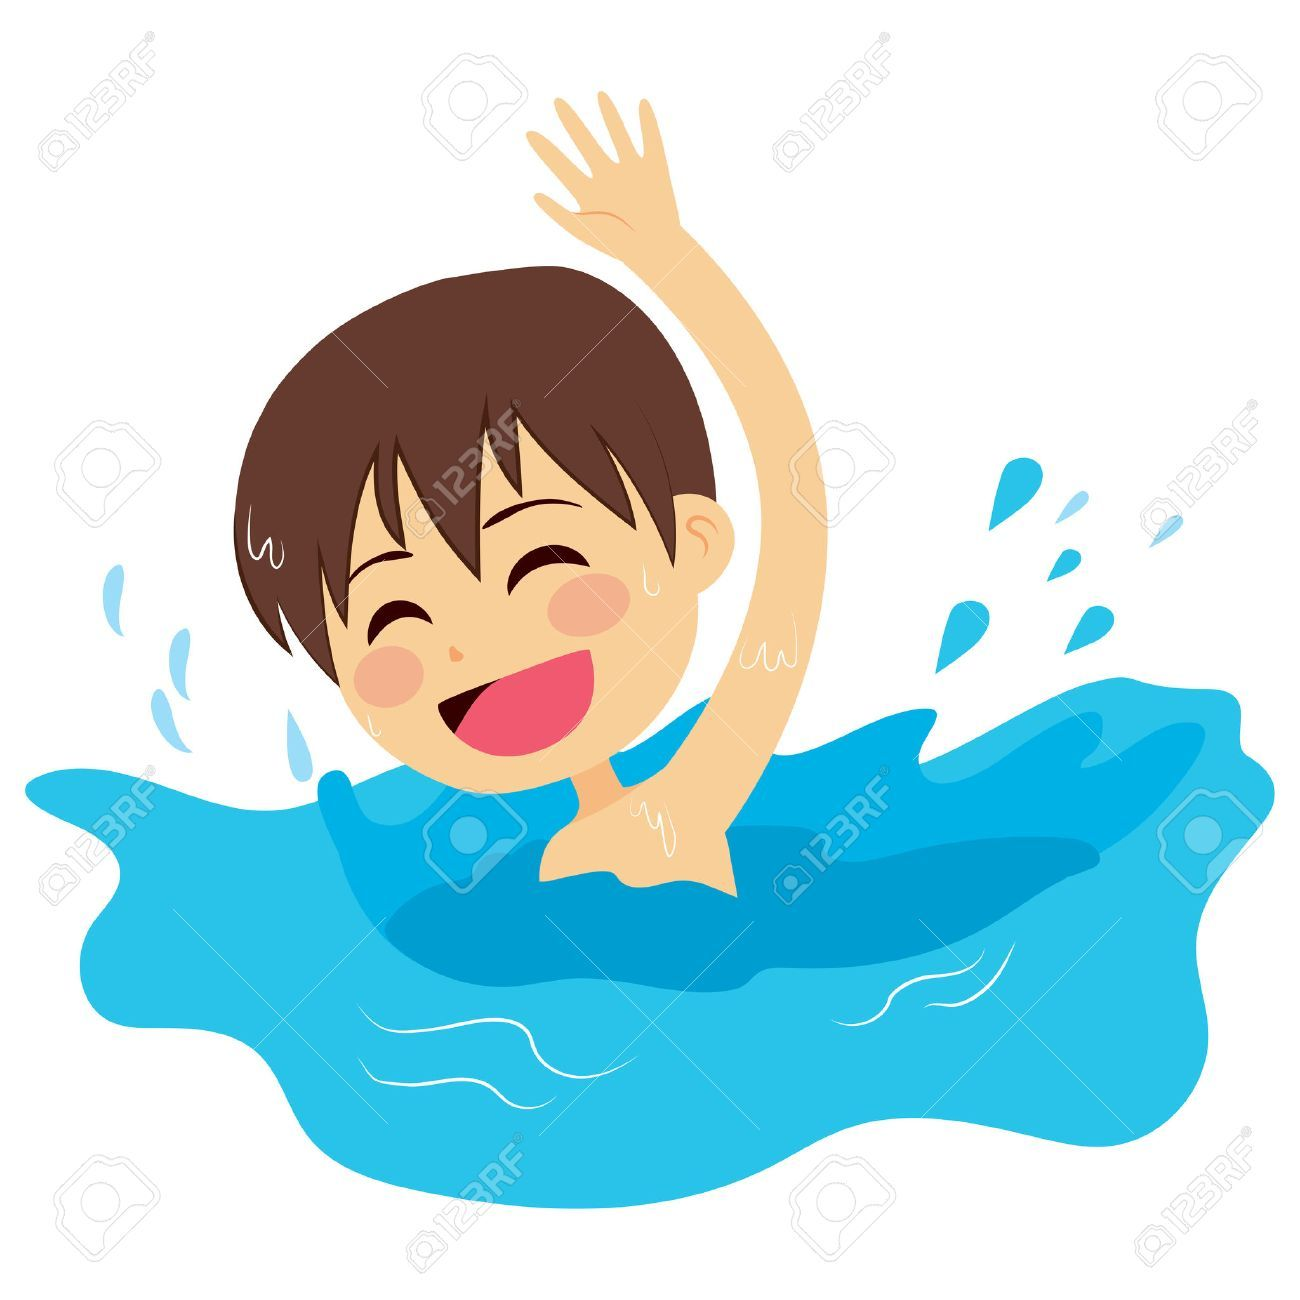 Free clipart kids swimming 1 » Clipart Portal.